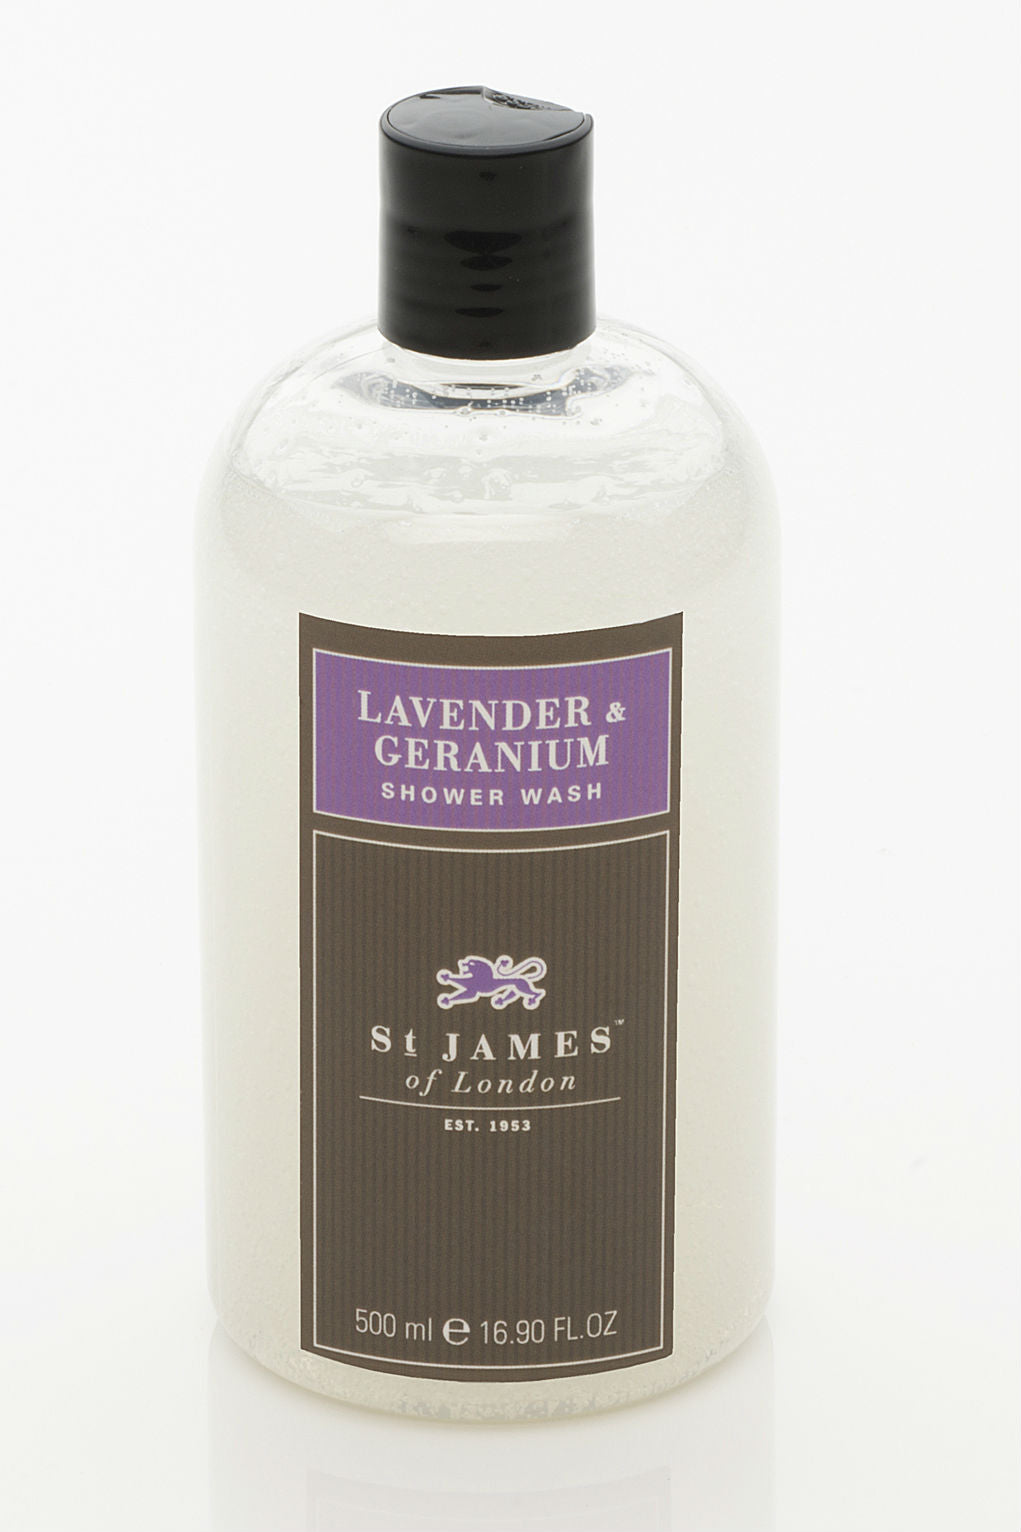 Lavender & Geranium Body Wash 0.5L (4435087097910)